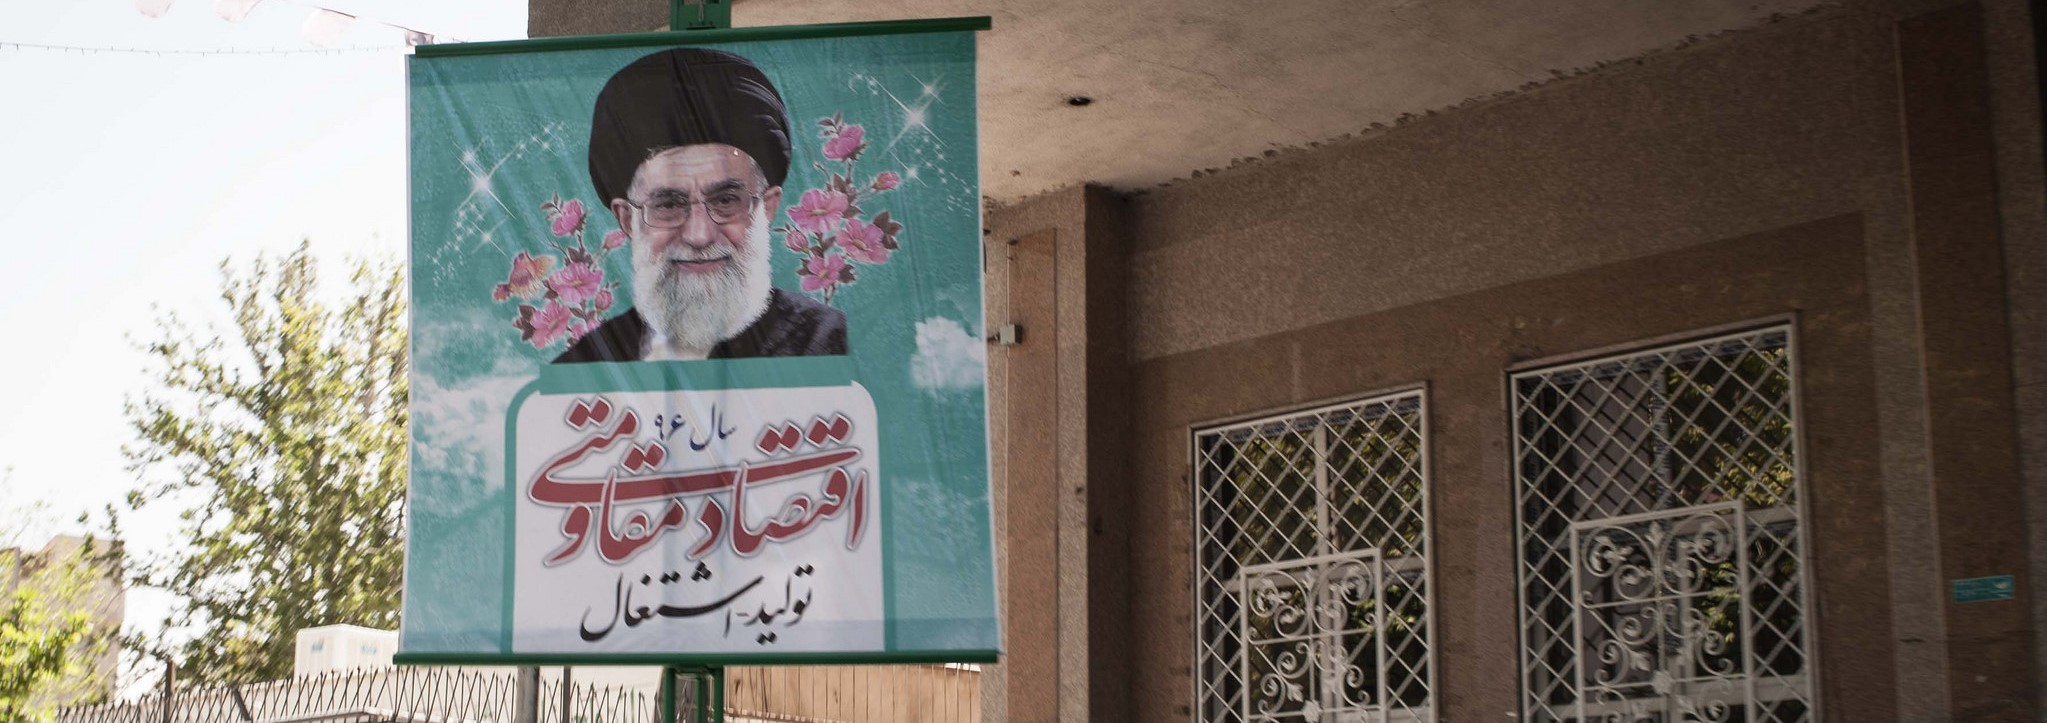 Poster of the re-elected Iranian president Hassan Rouhani (Photo: Flickr/ Evgeniy Isaev)